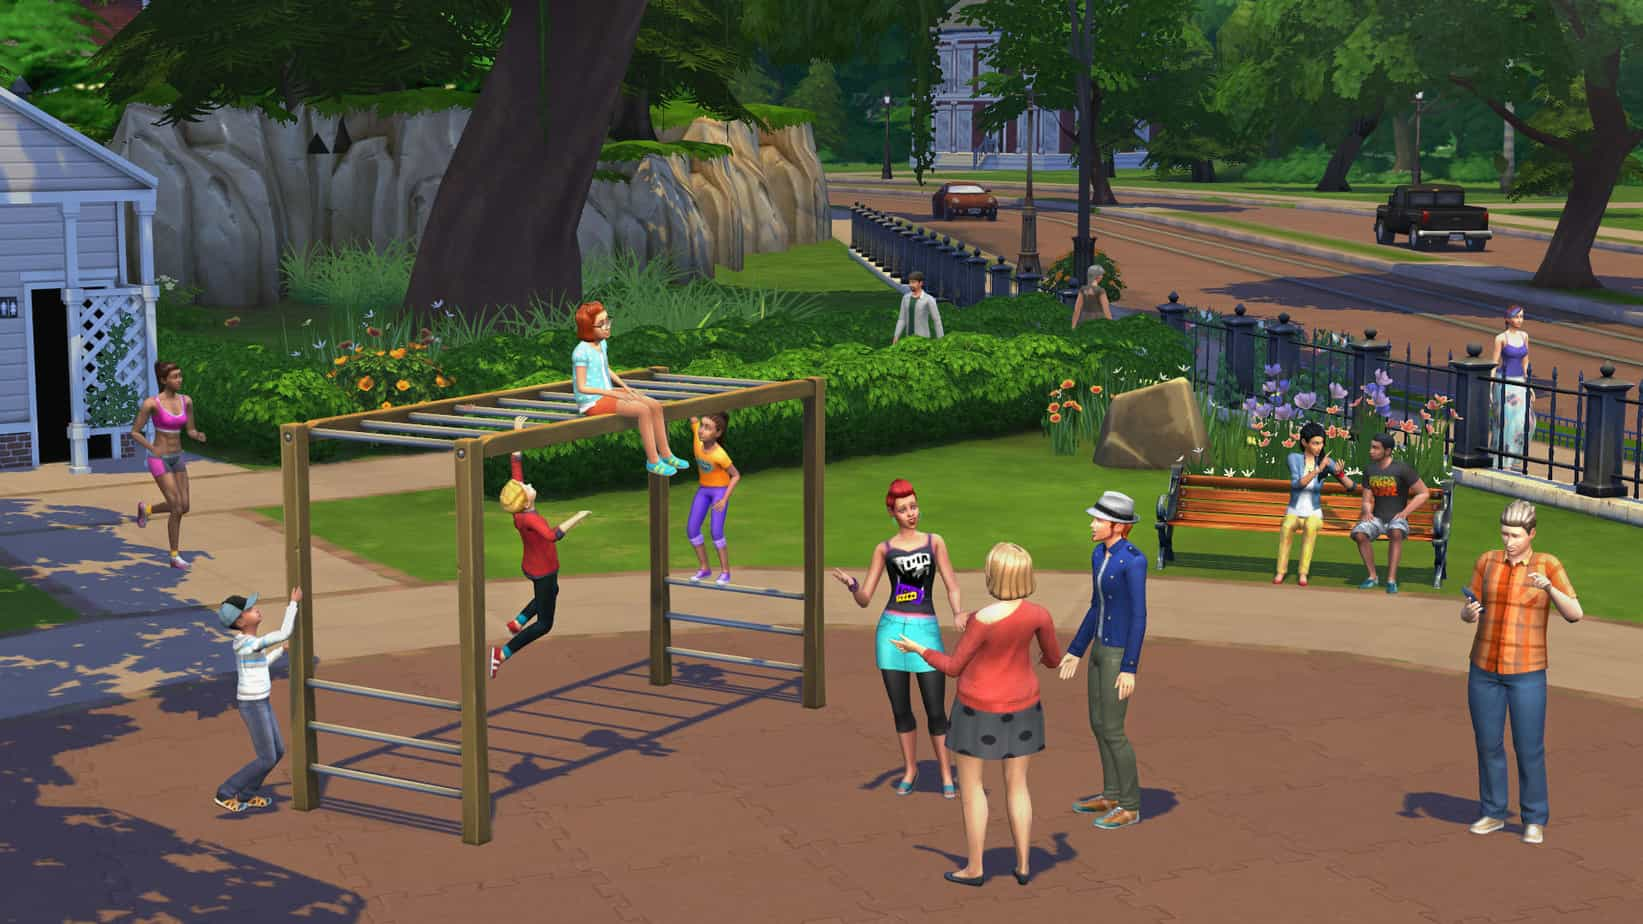 Unlike The Sims 3, the background is merely an illusion. You can